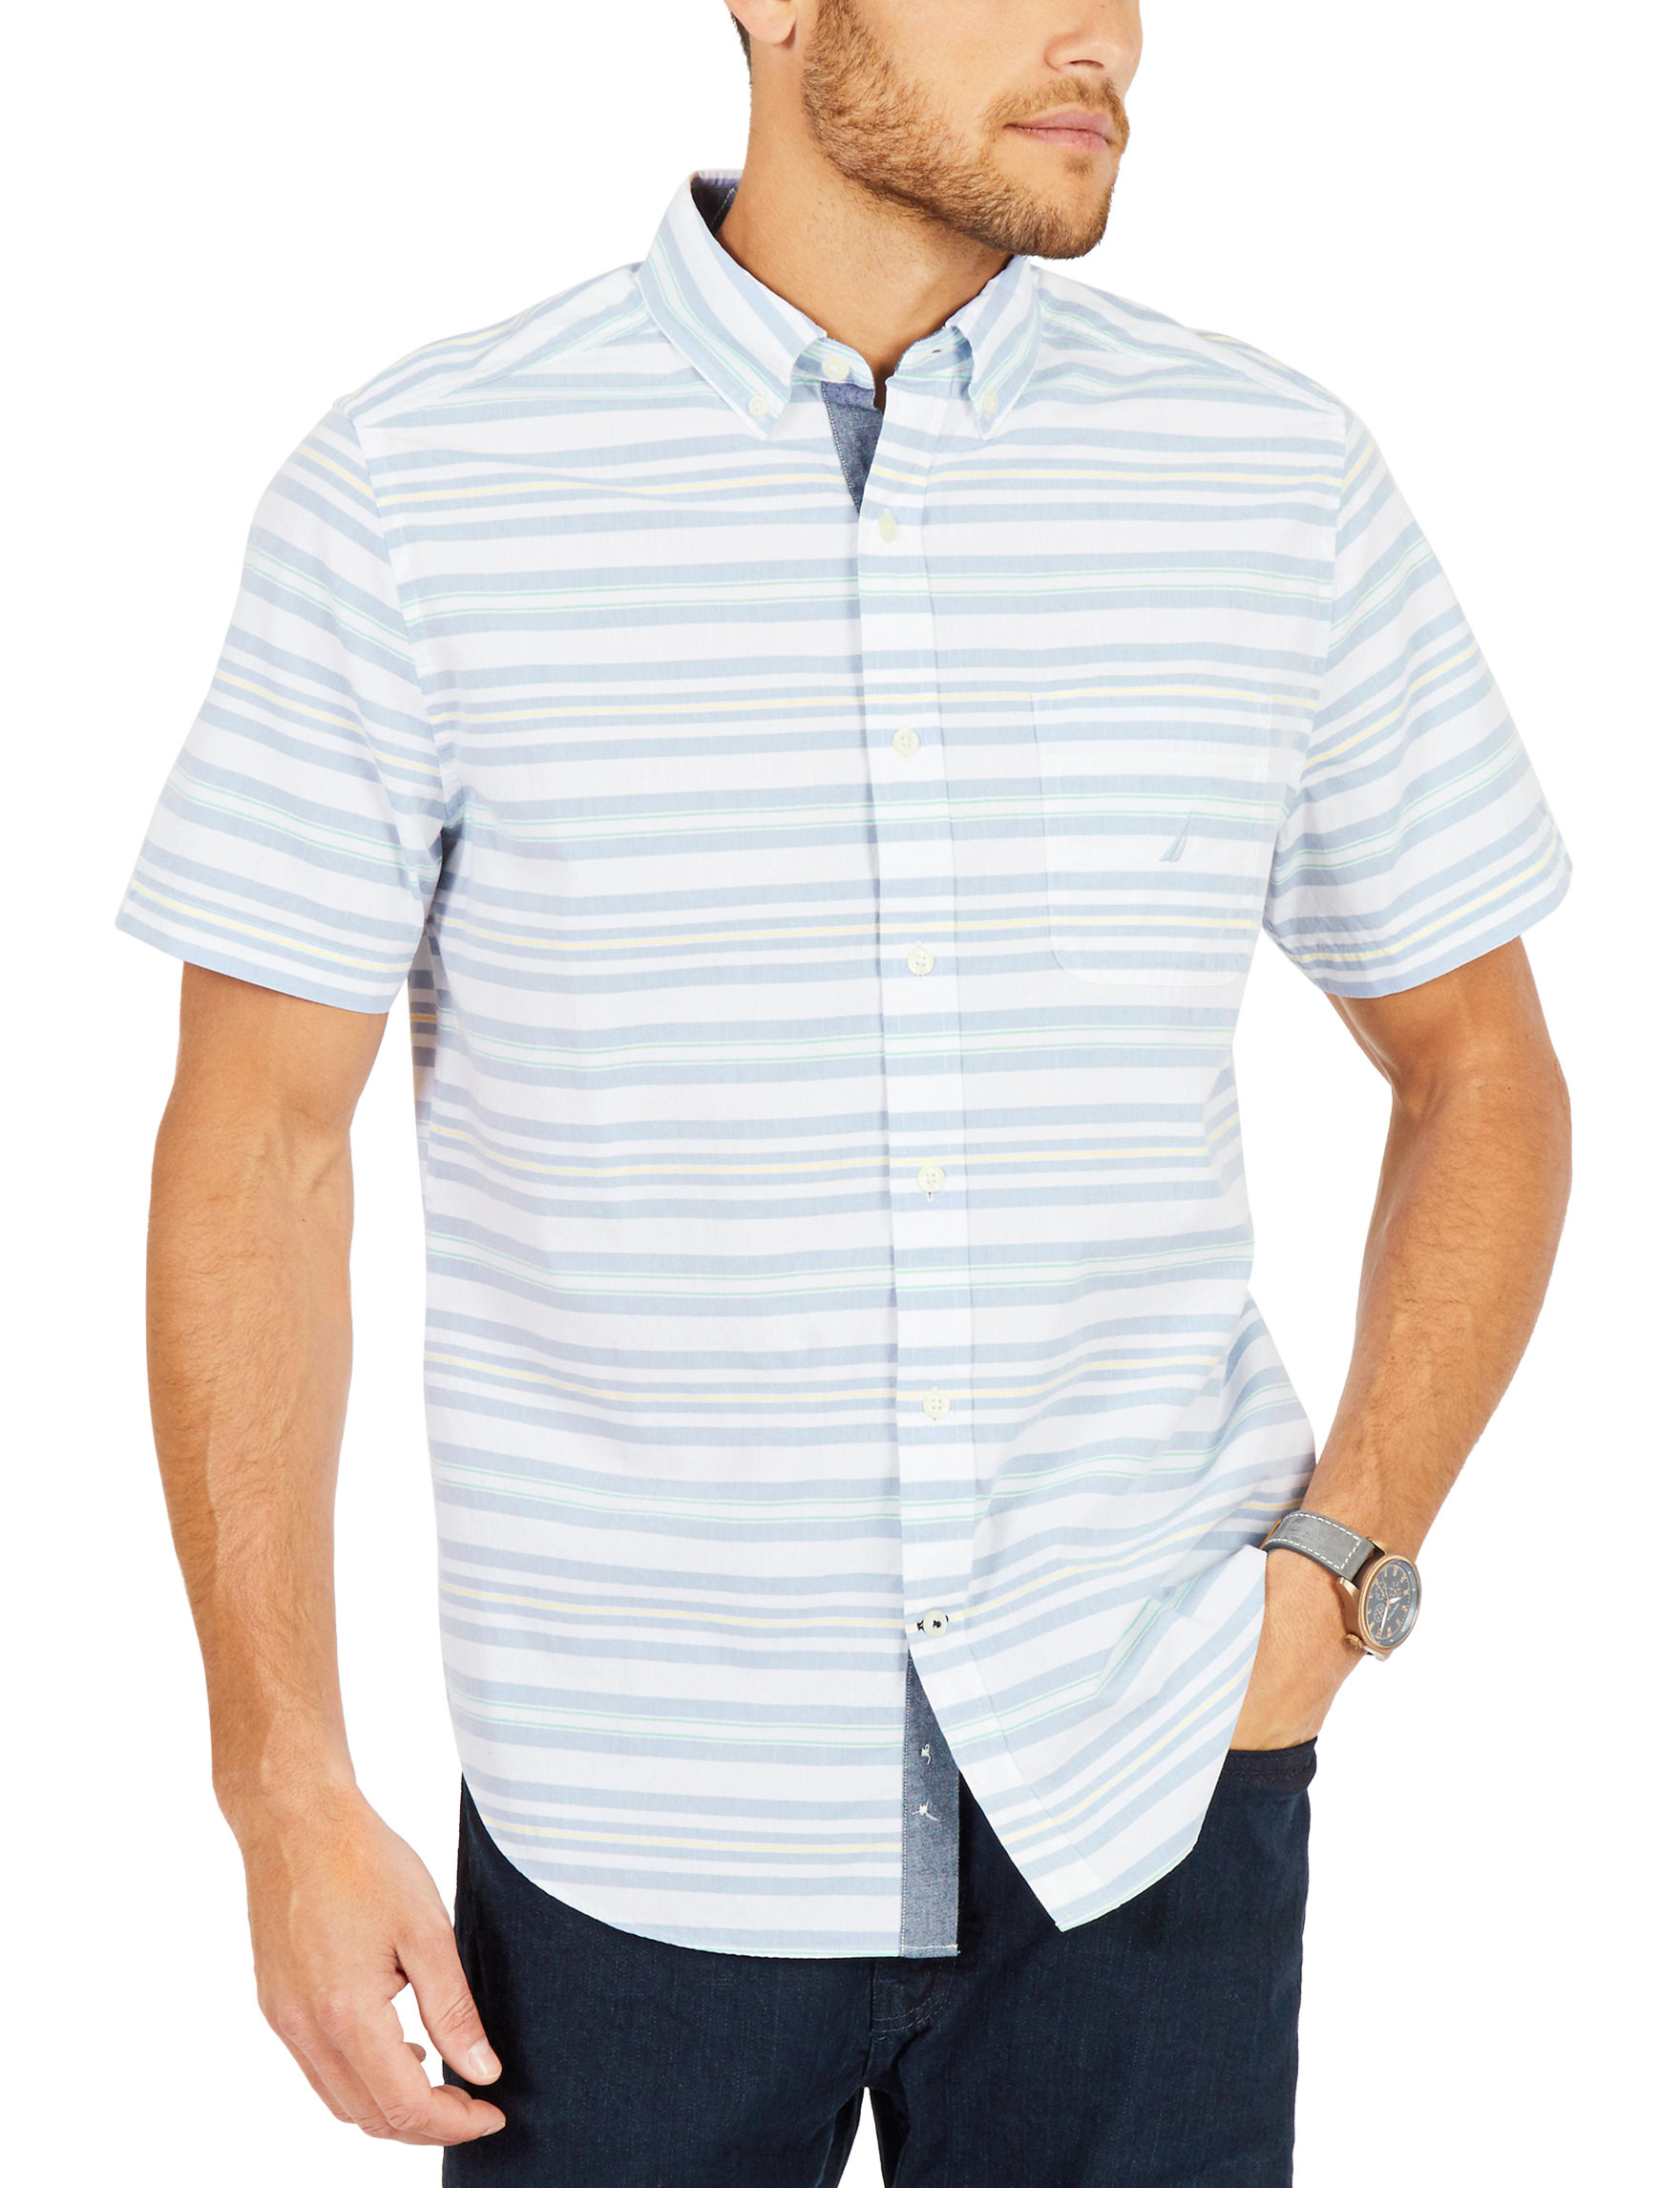 Nautica Blue / White Casual Button Down Shirts